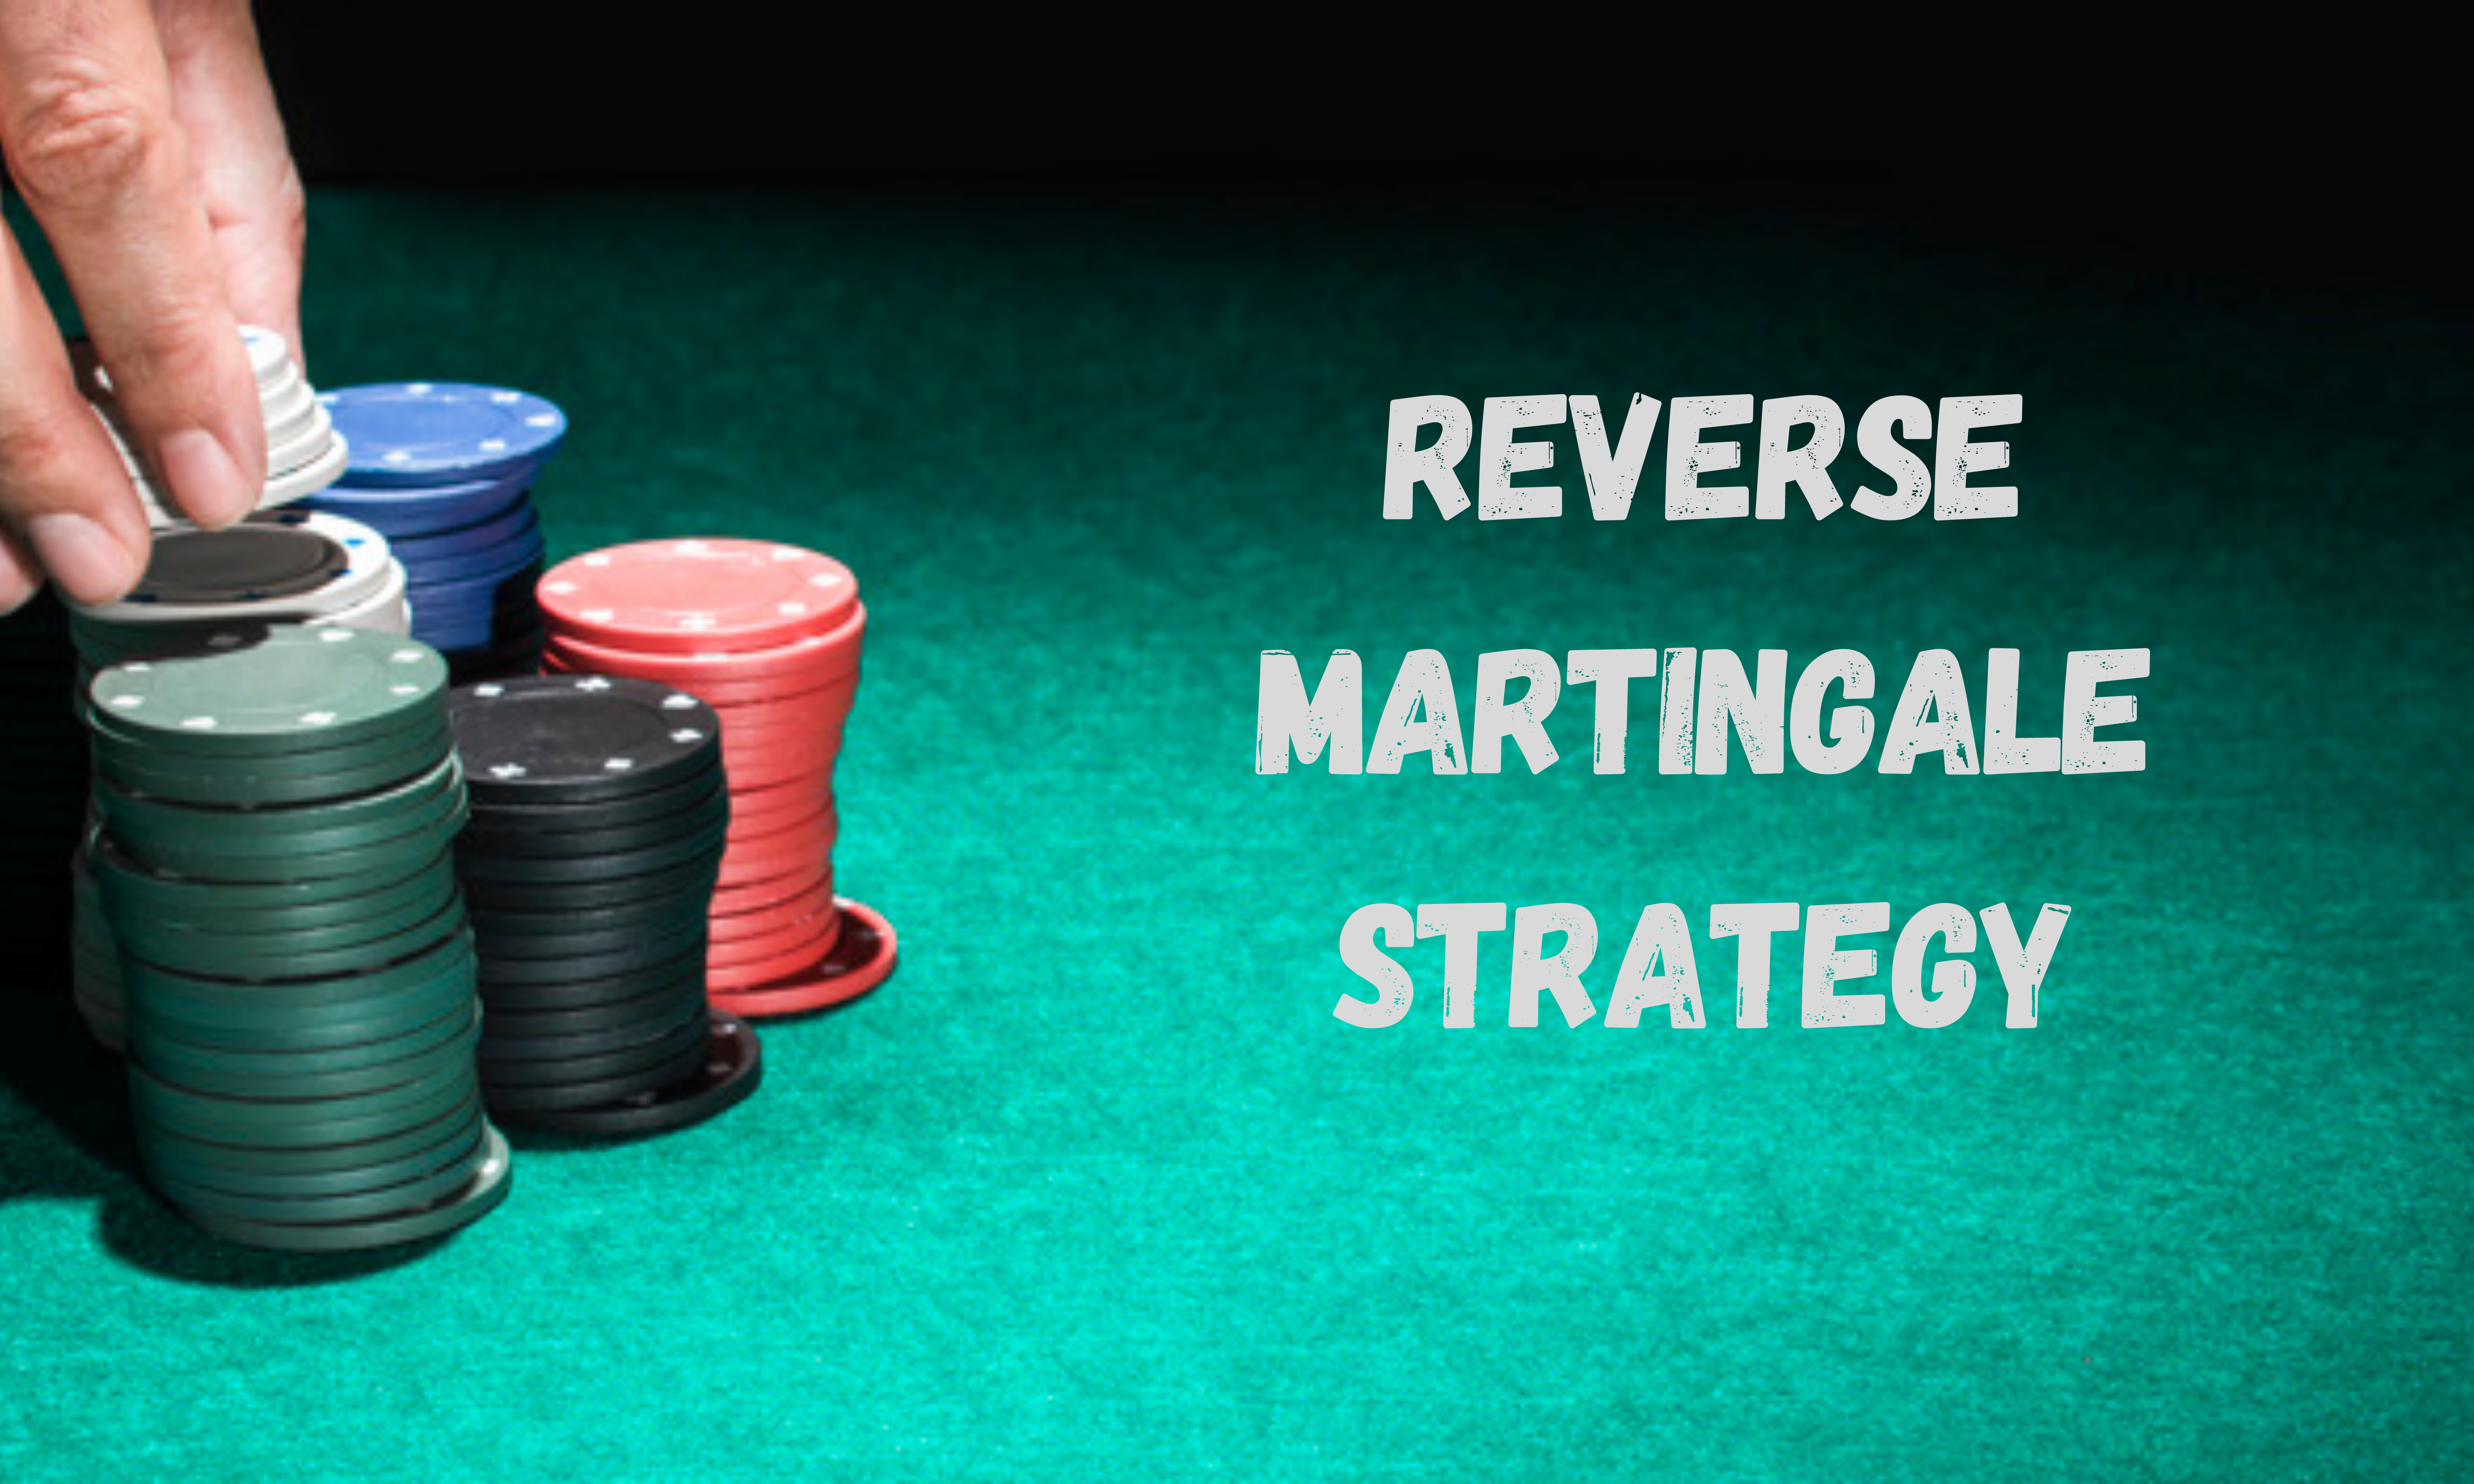 Reverse Martingale Strategy